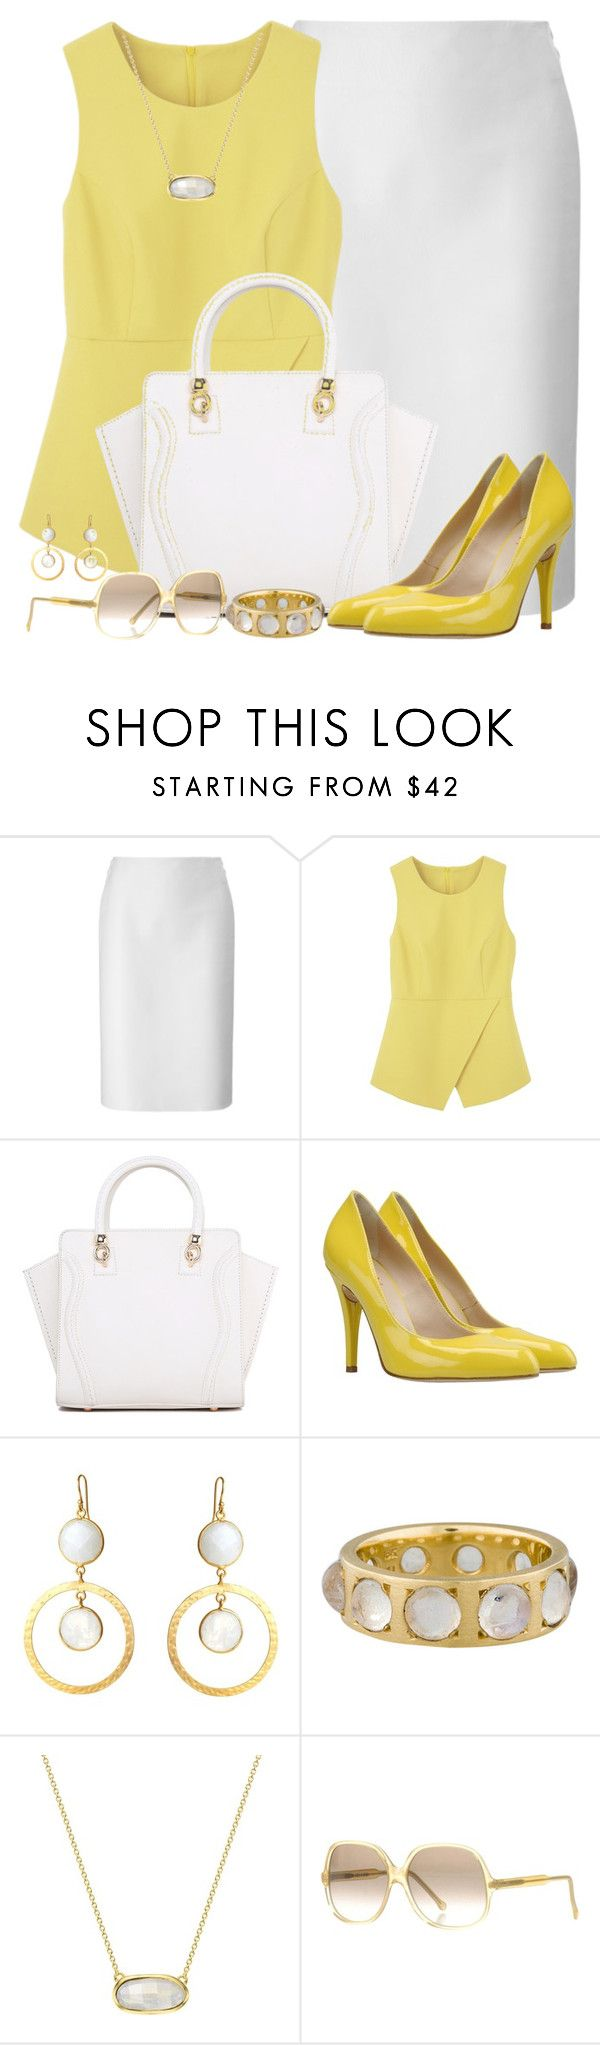 """""""Origami Peplum Top"""" by brendariley-1 ❤ liked on Polyvore featuring Lucas Nascimento, George J. Love, Feather & Stone, Irene Neuwirth, Monica Vinader and Cutler and Gross"""